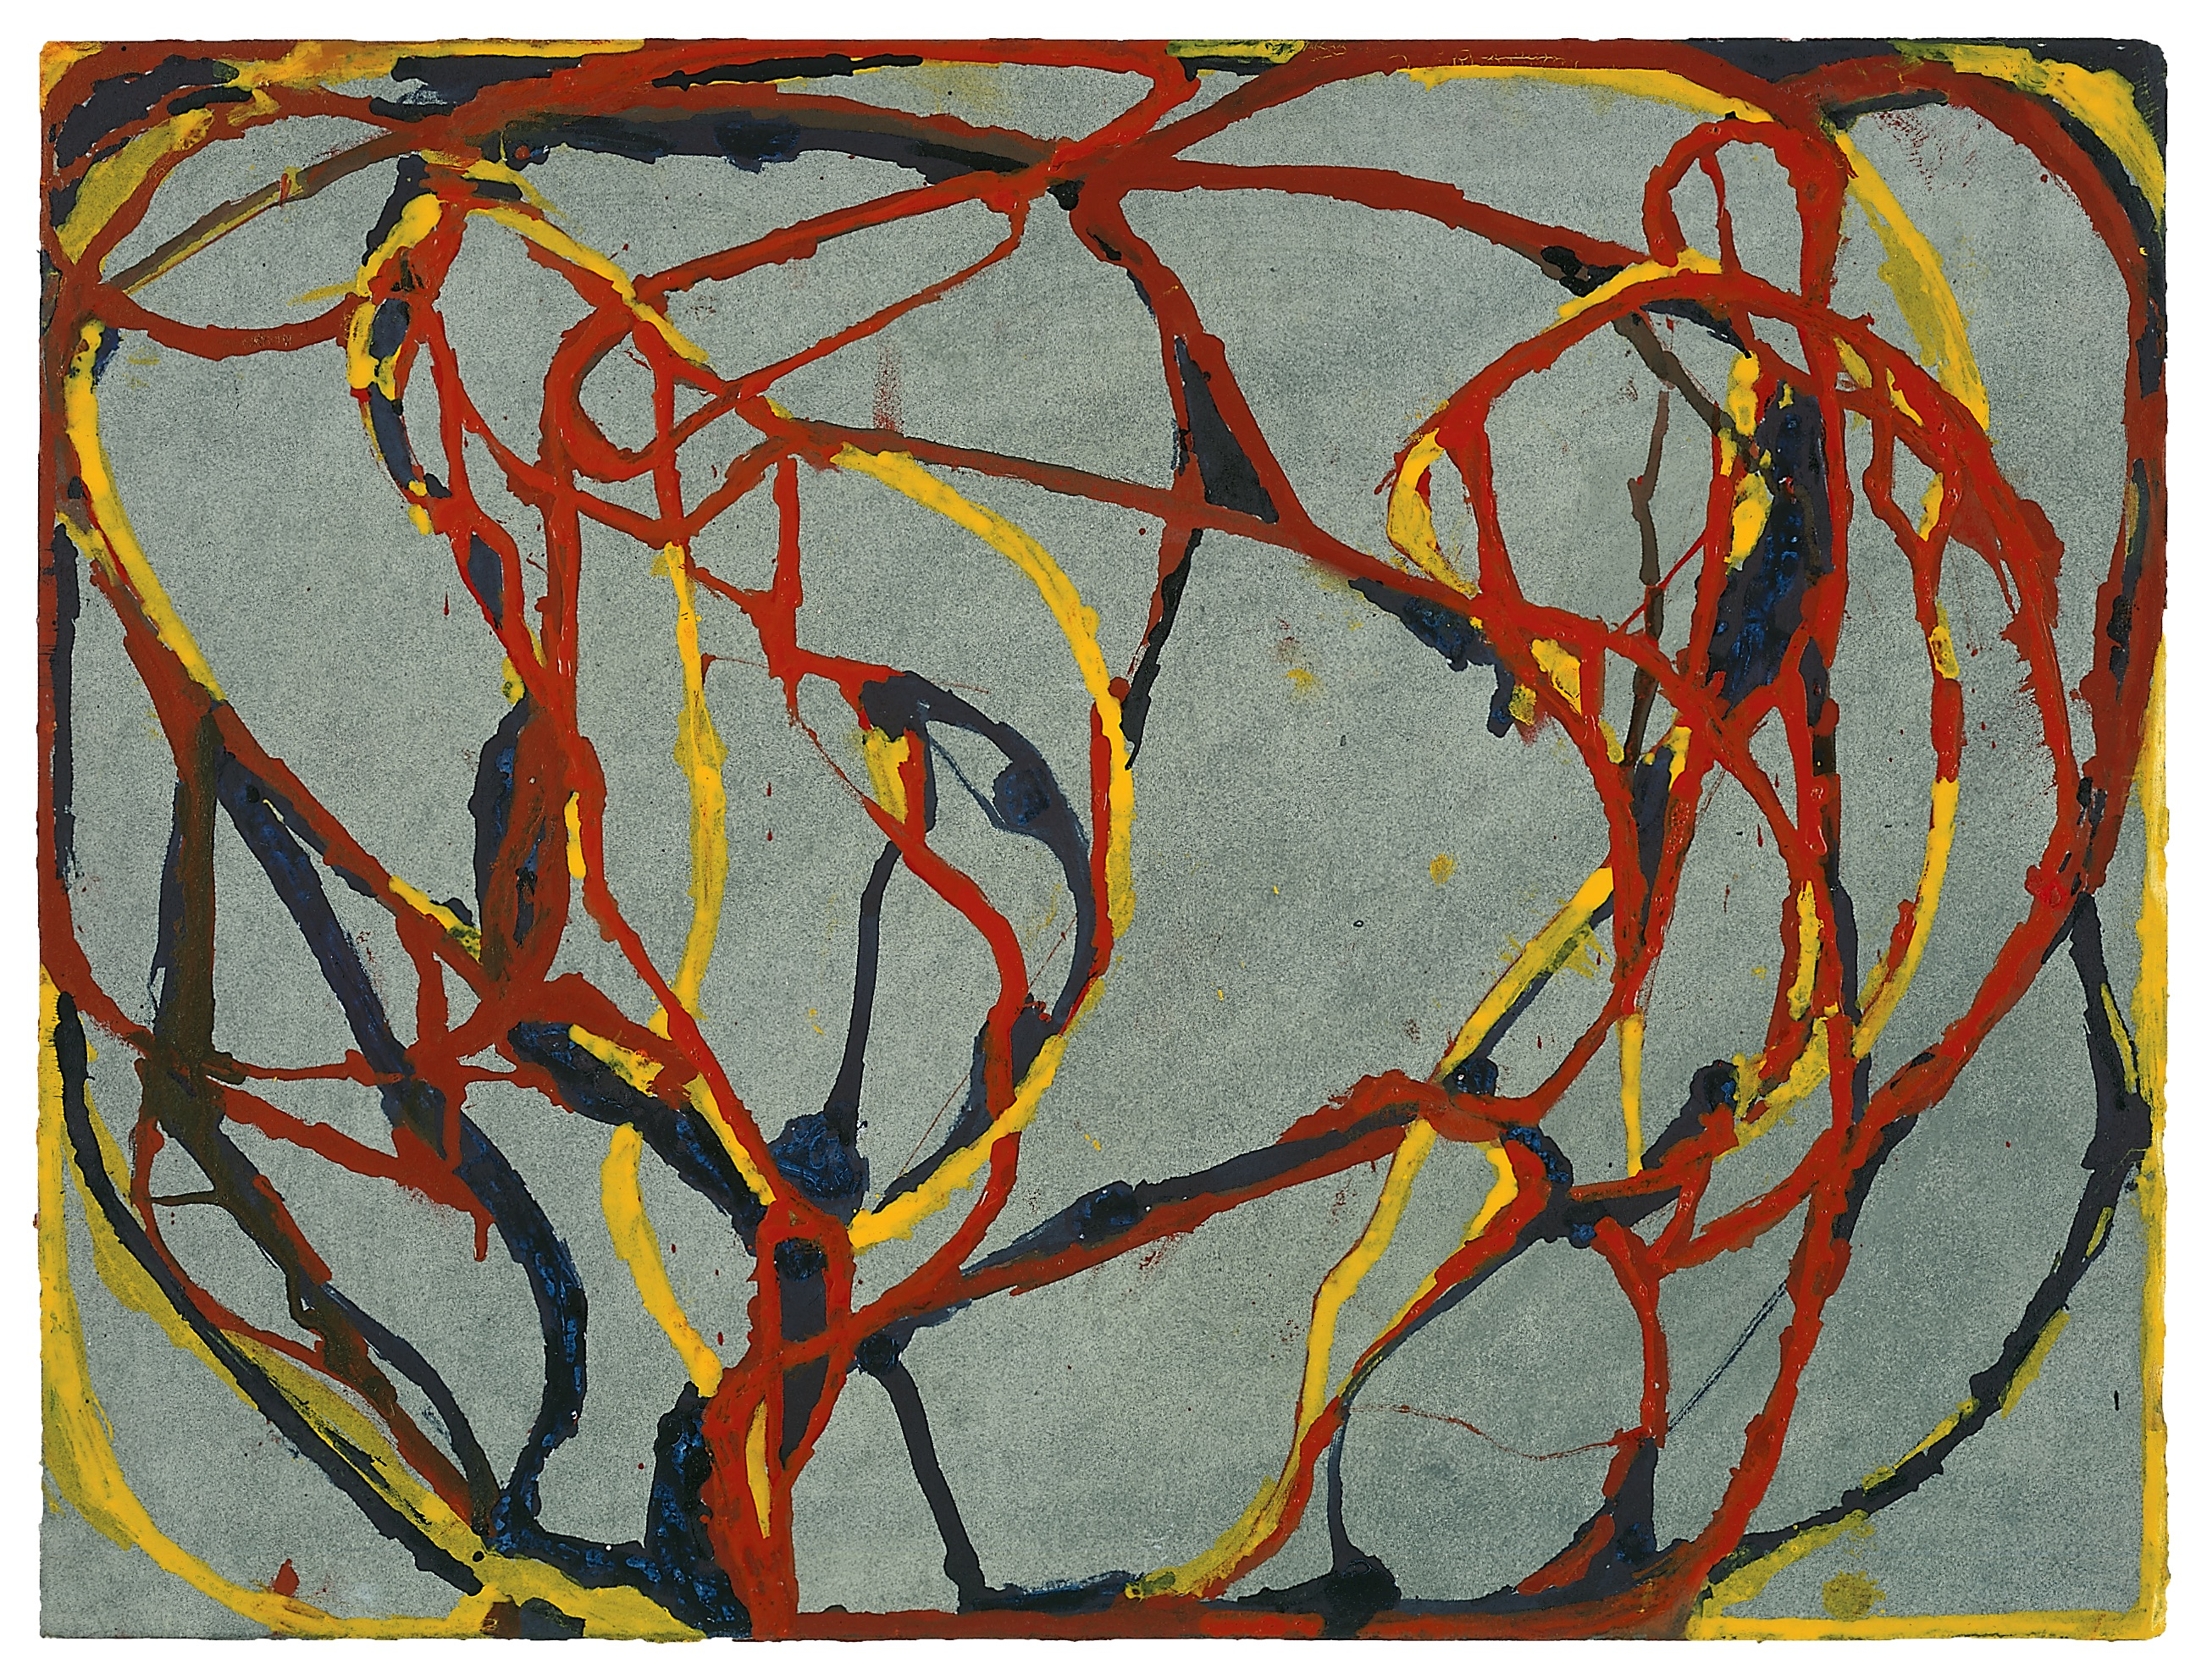 """2 Red Rocks 5 ""(2000/2002), Kremer inks on Lanaquarelle paper, 15 x 20 inches. © 2019 Brice Marden/Artists Rights Society (ARS) New York. Photography by Bill Jacobson, 2002"